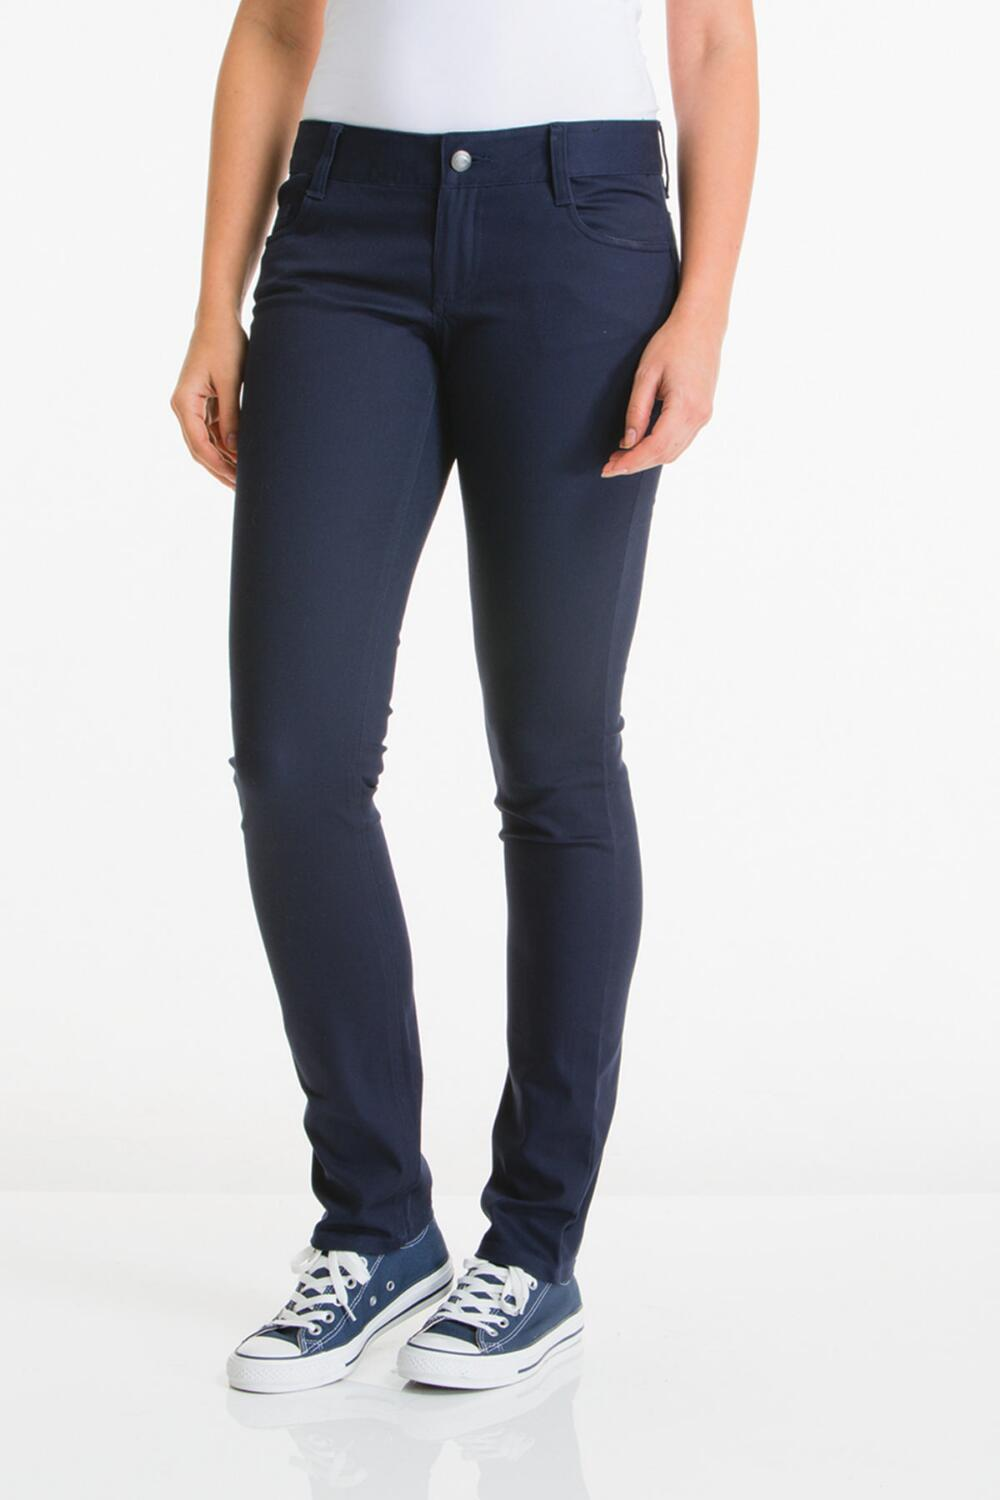 20 French Toast Girls Flat Front Twill Pants in Navy